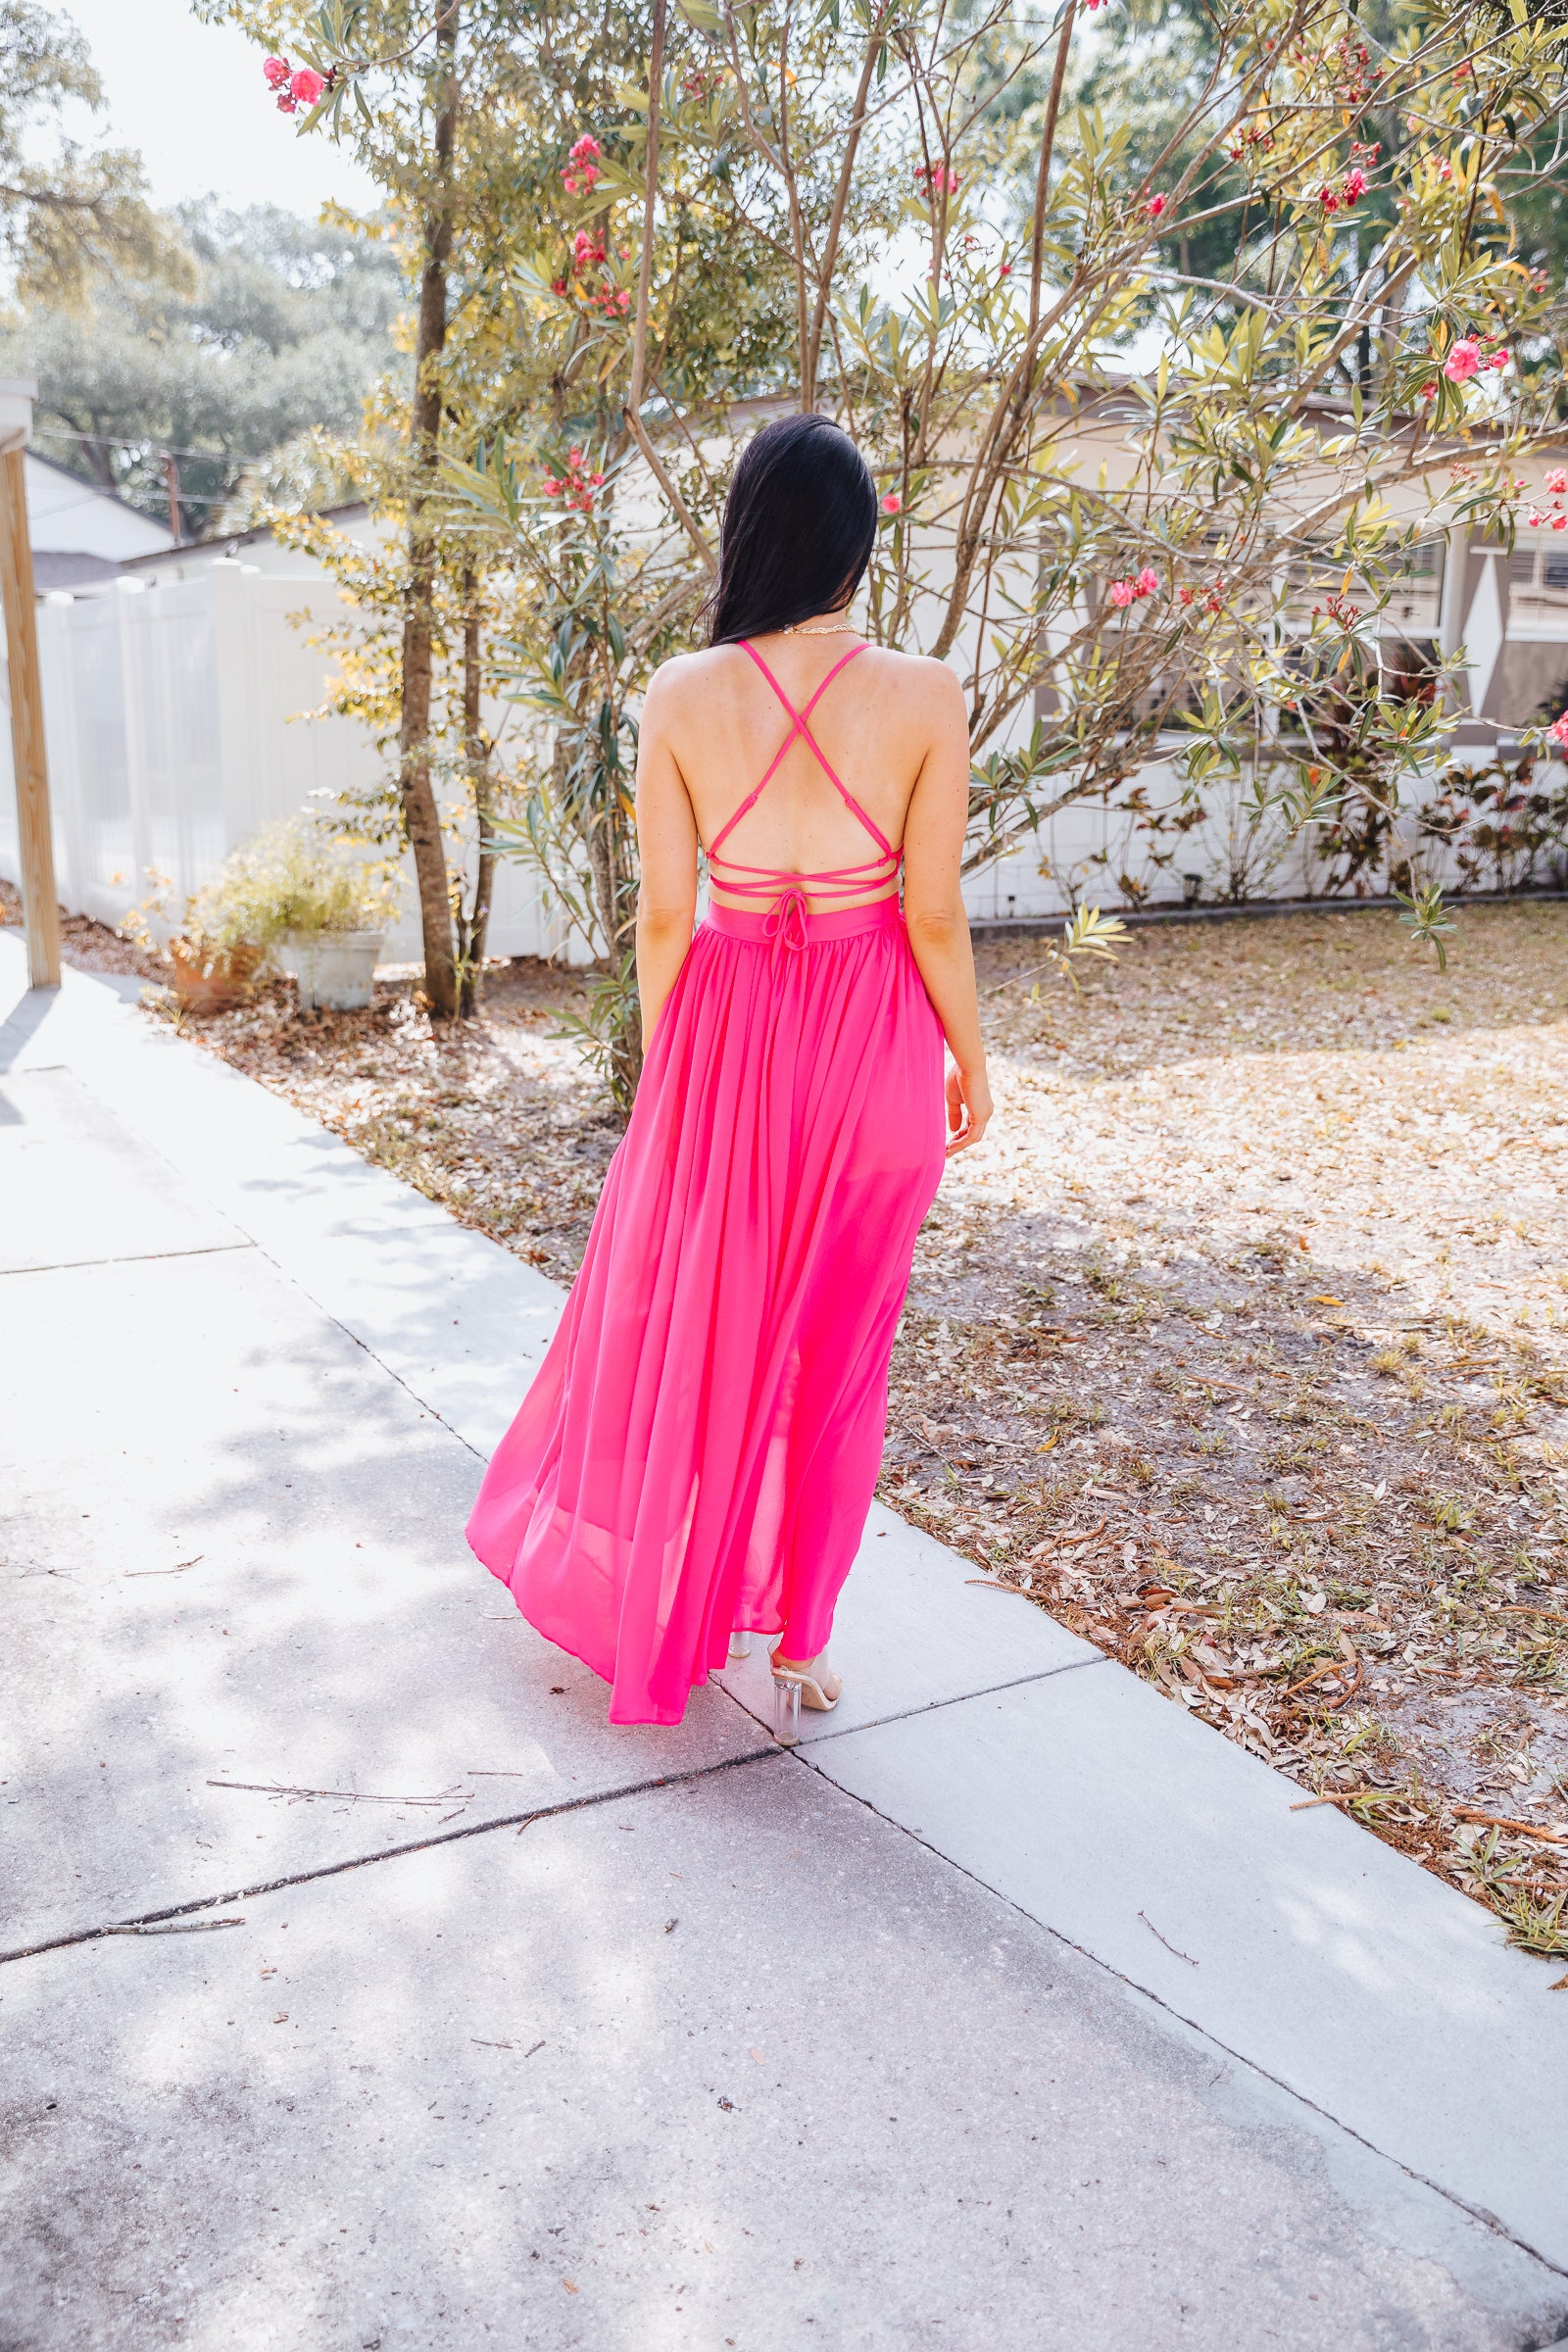 Skinny adjustable straps attach to a deep v-neckline on a triangle bodice with cutouts at the side. It meets a fitted waistband and flows down into a long chiffon maxi skirt with slits.